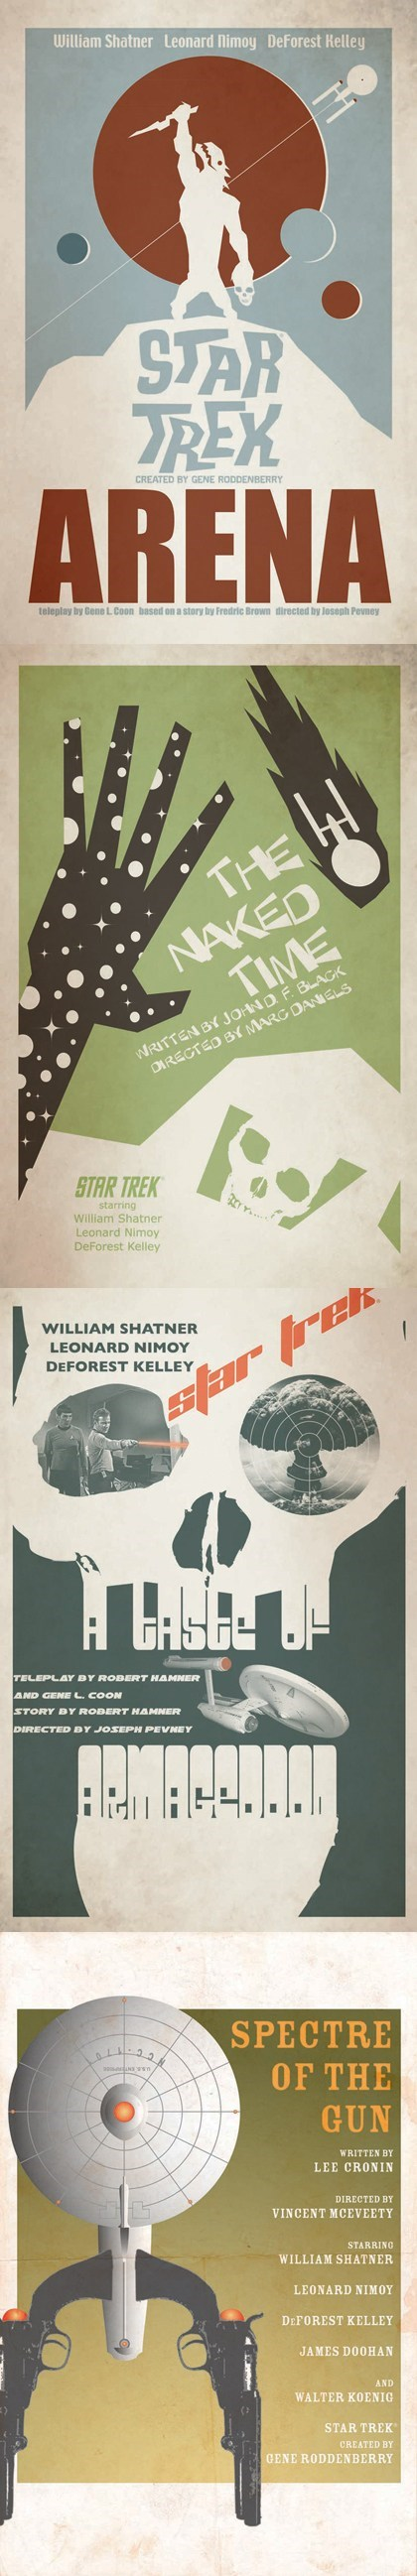 arena,enterprise,posters,Gorn,Star Trek